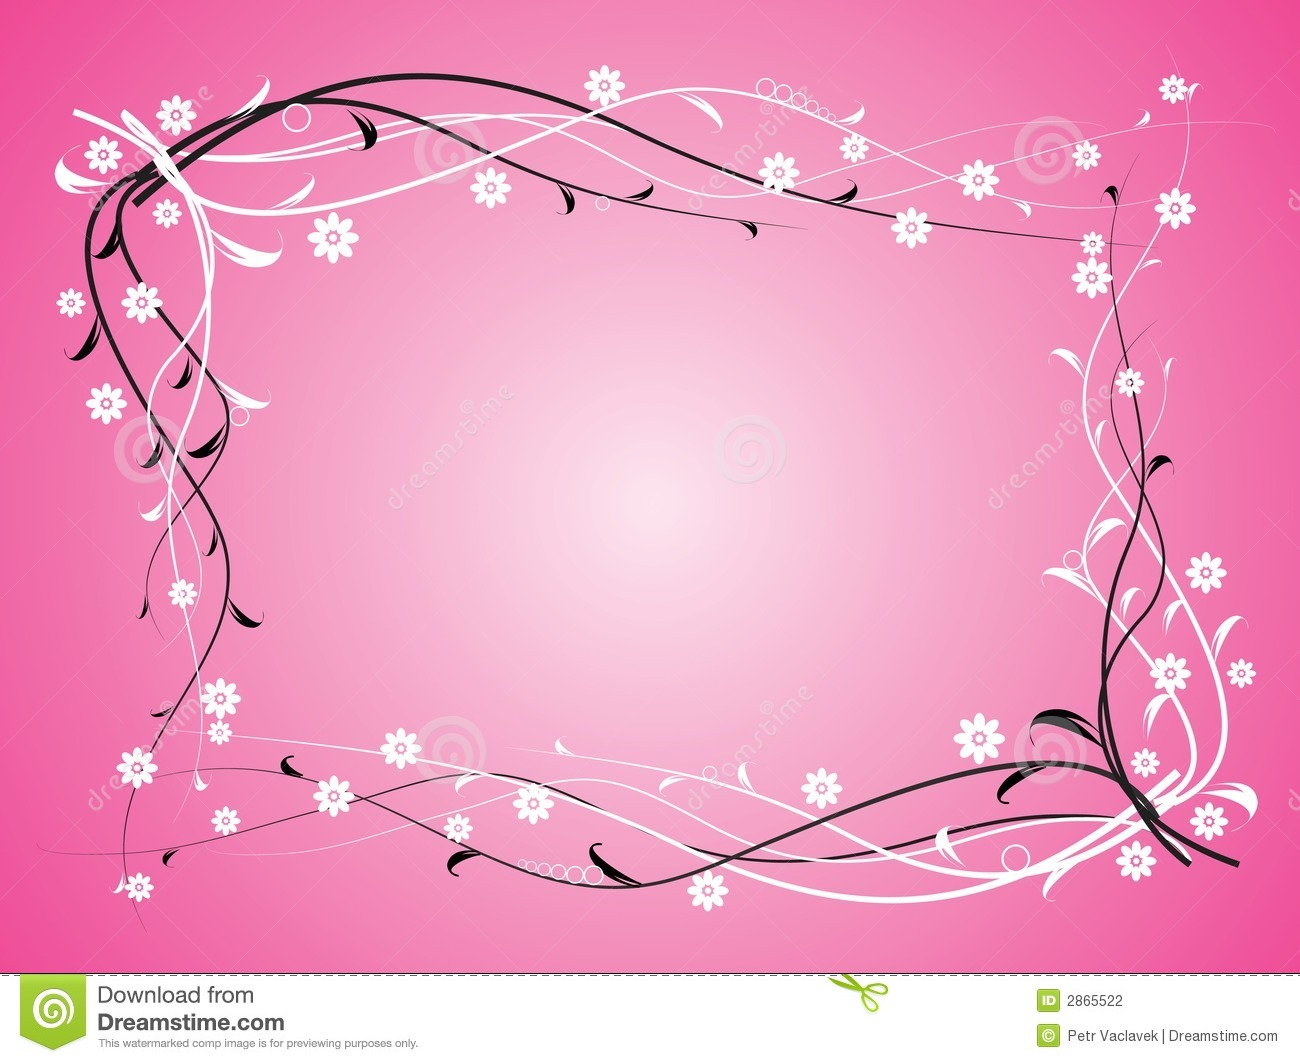 Flowers on pink background stock vector illustration of marguerite flowers on pink background mightylinksfo